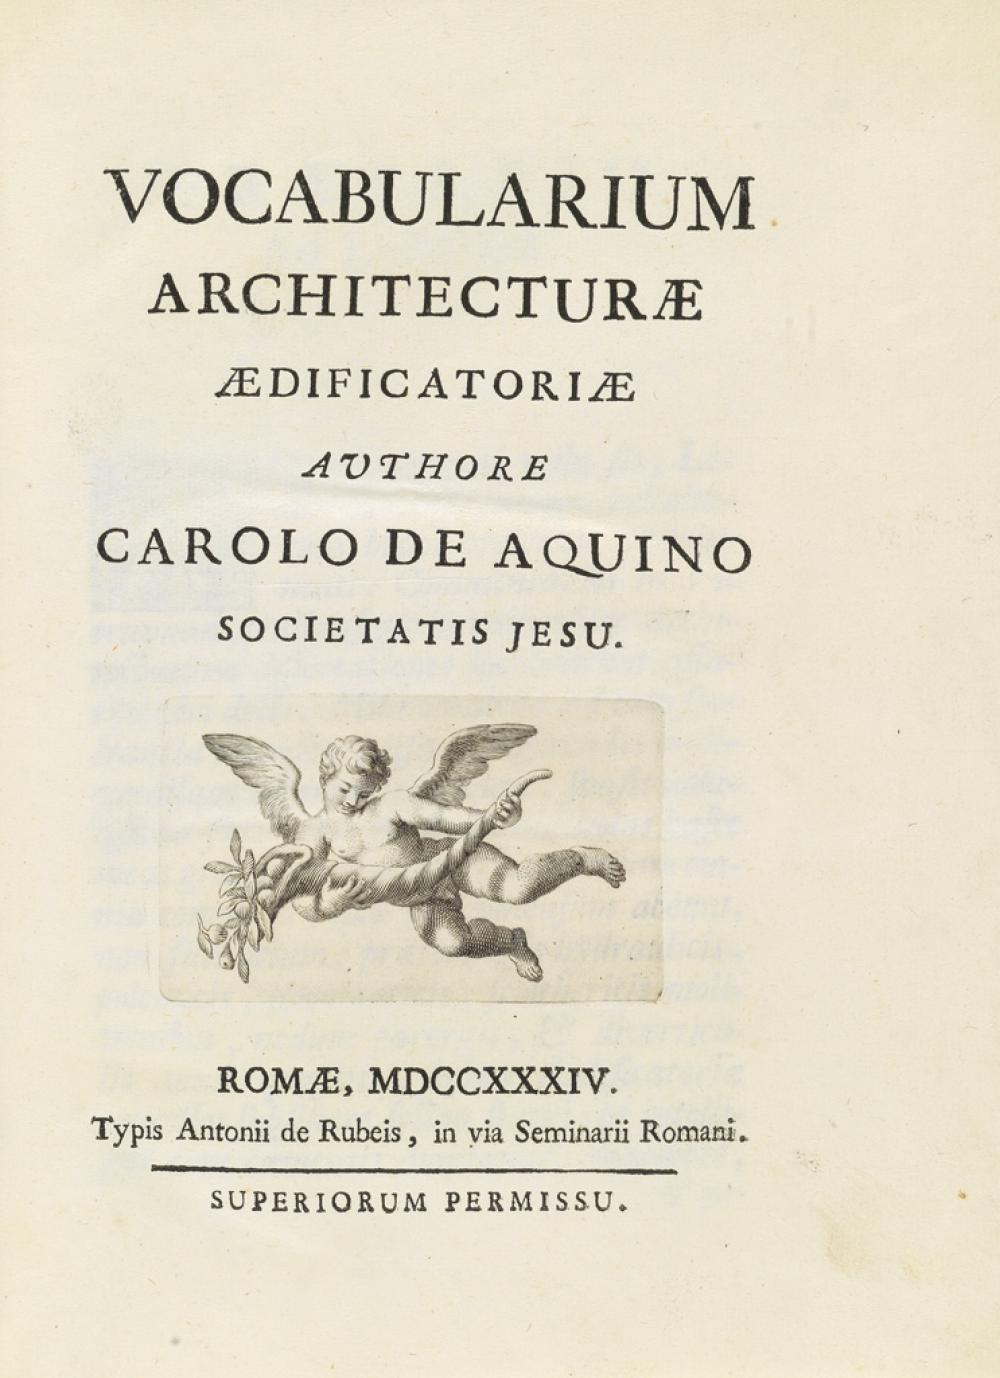 (ARCHITECTURE.) Aquino, Carolo De. Vocabularium Architecturae.